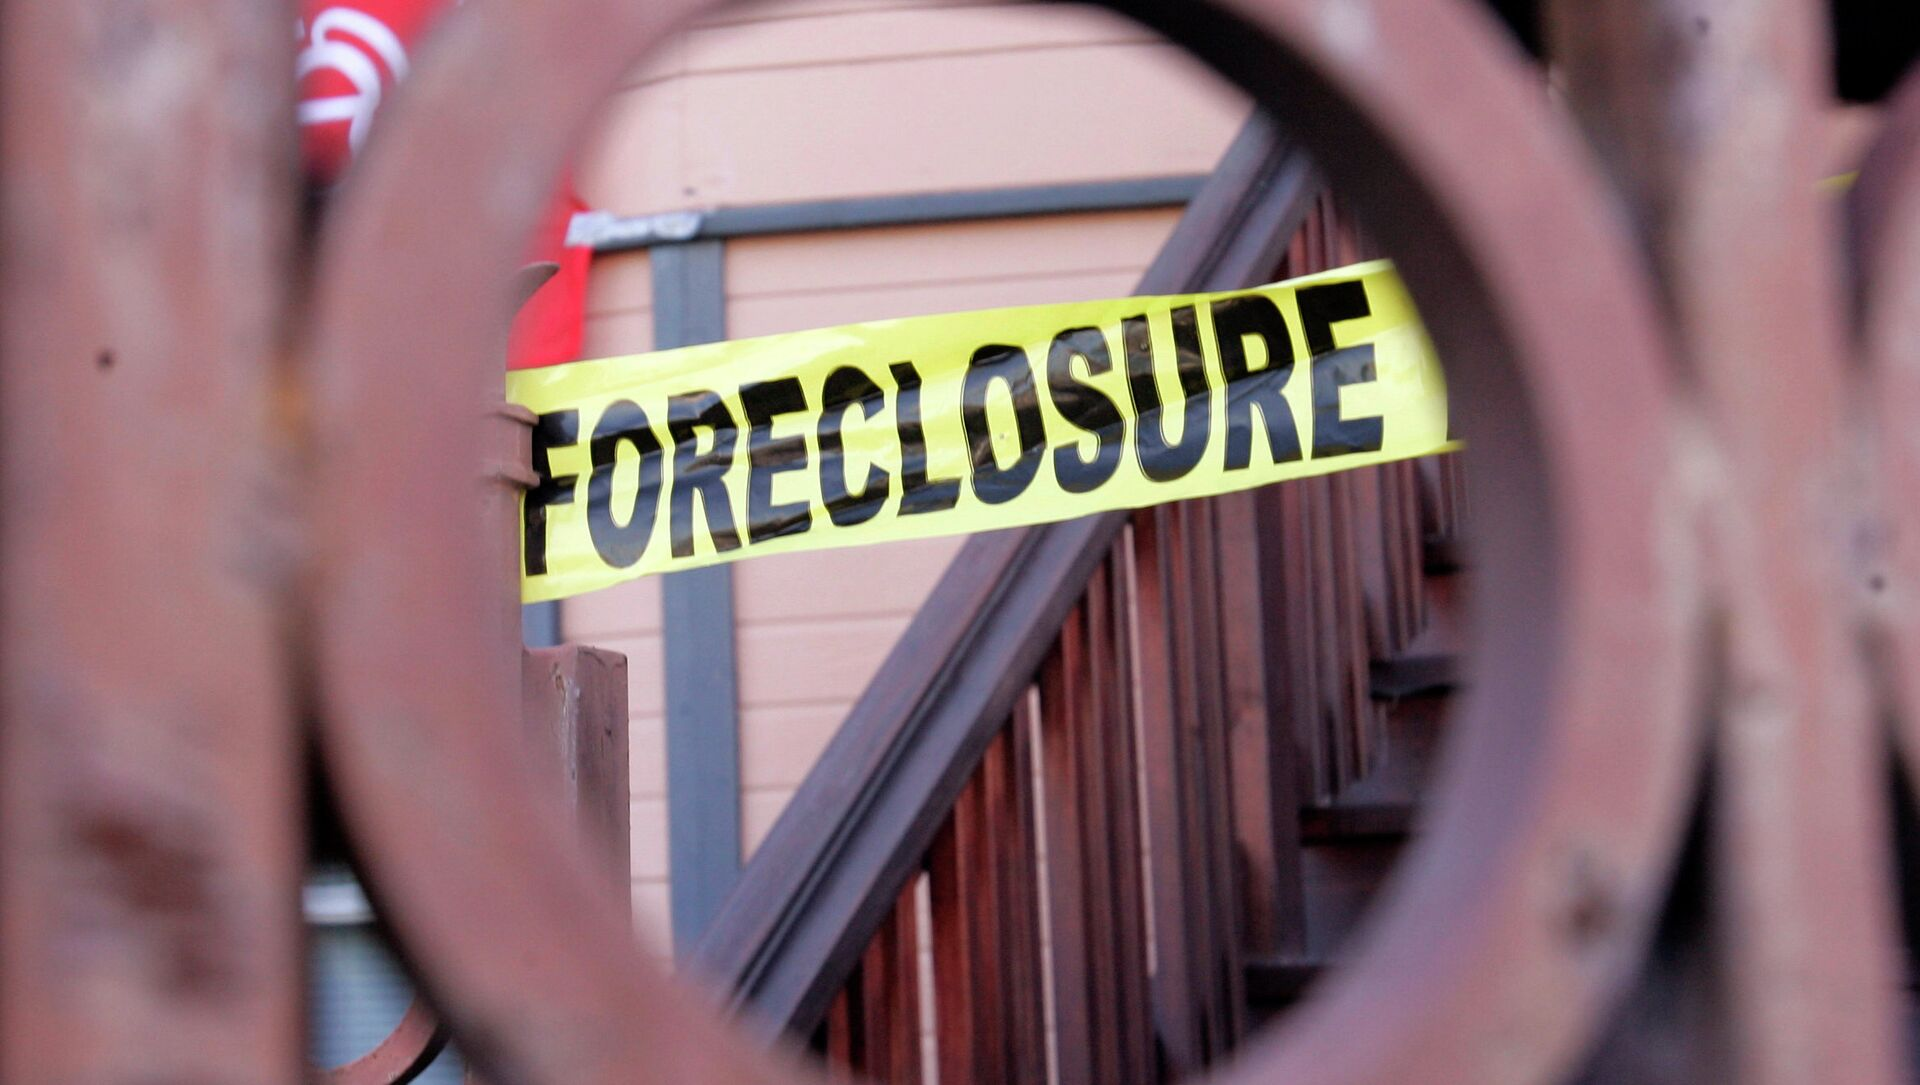 Foreclosure sign shown through a front gate of a foreclosed home in Oakland, California - Sputnik International, 1920, 03.08.2021